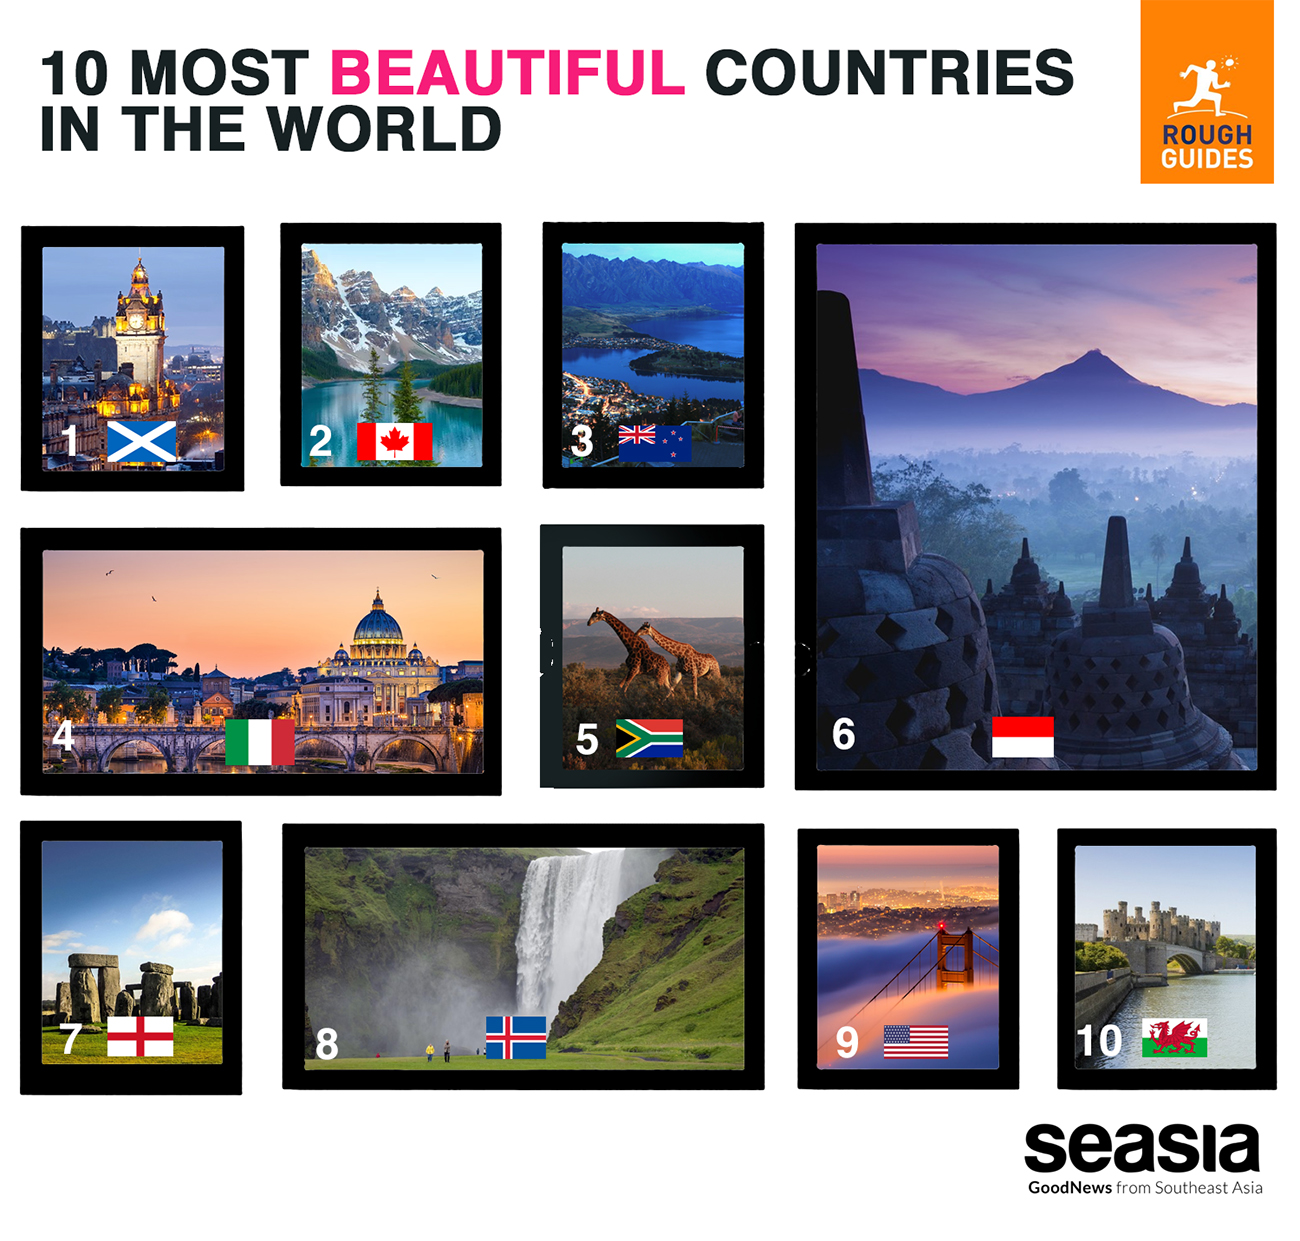 Top 20 Most Beautiful Countries in the World Revealed | Seasia co